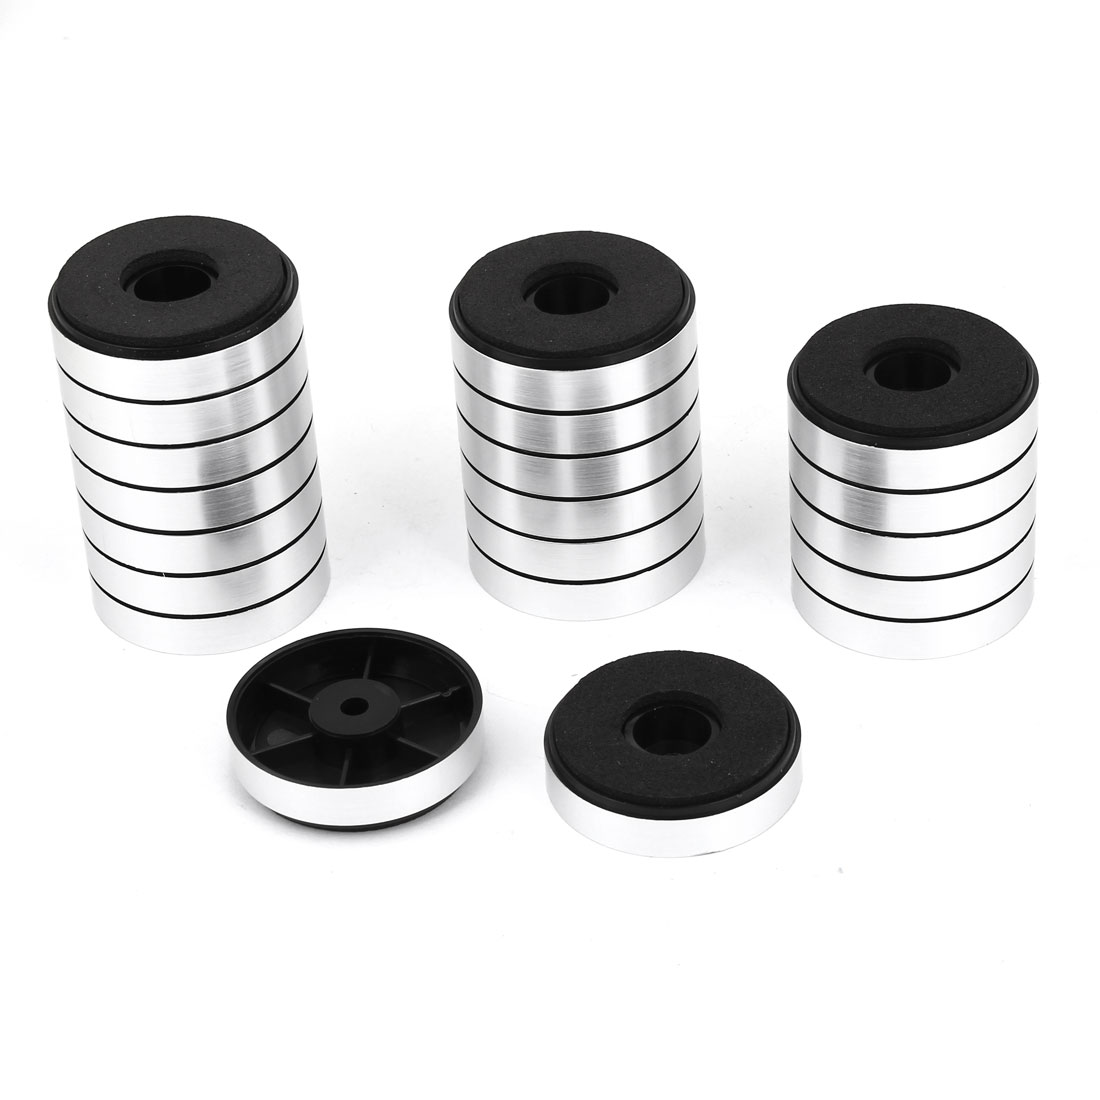 Unique Bargains 40mm x 10mm CD Player Speaker DAC Ammeter Feet Pad Stand Silver Tone 20 Pcs for Home Essential